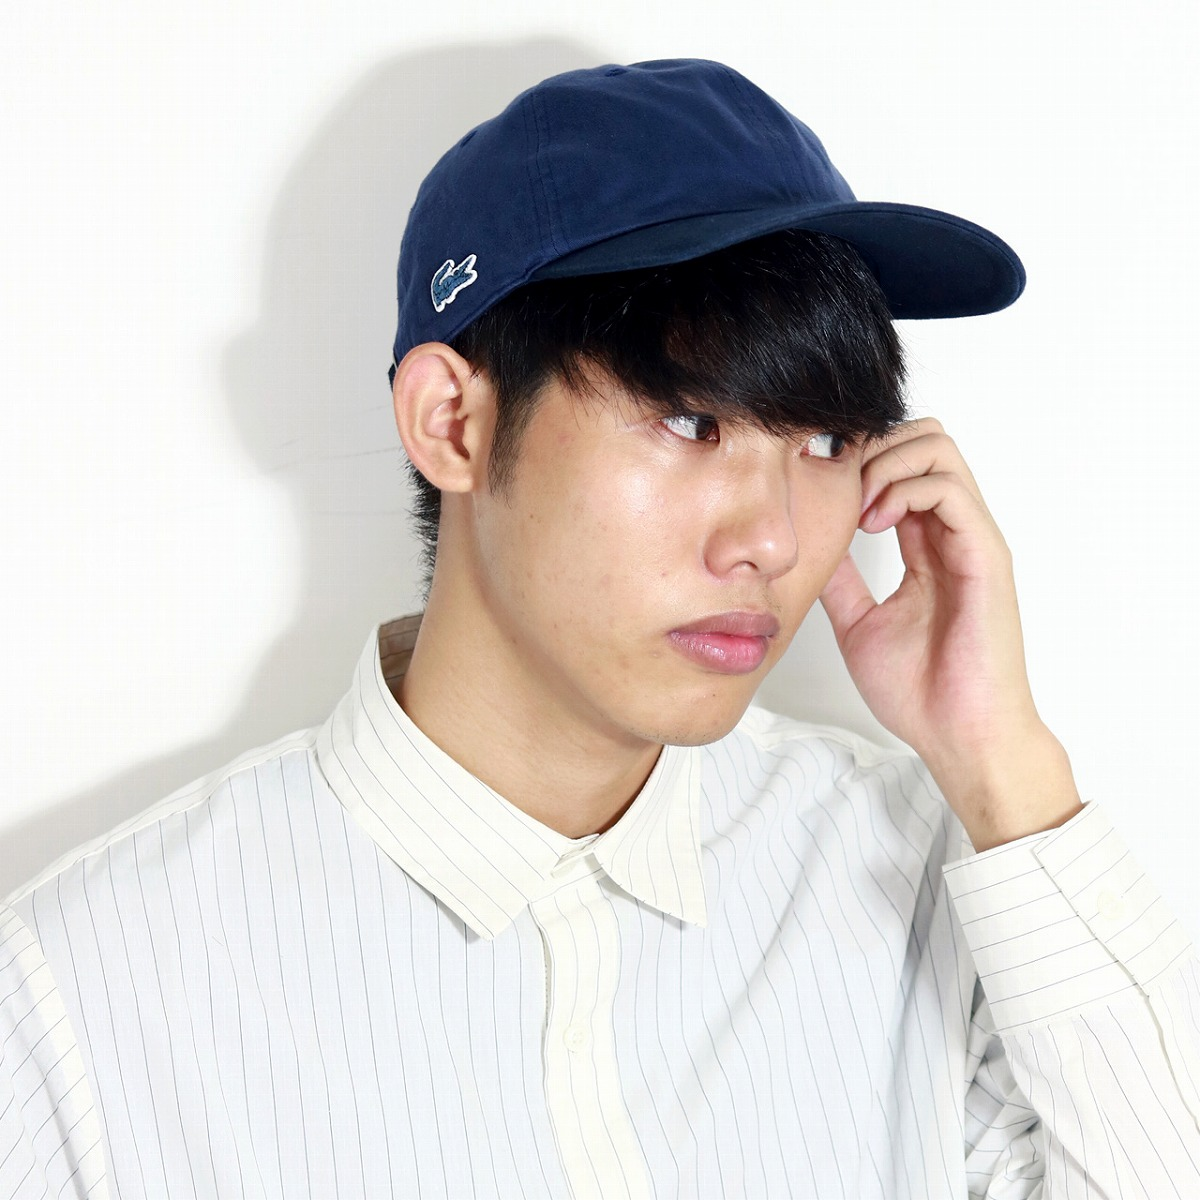 753856e4deea1e ELEHELM HAT STORE: I wash it in the lacoste cap back satin 硫化染 Lacoste  embroidery logo cap men four season, and processing one wash crocodile one  point ...